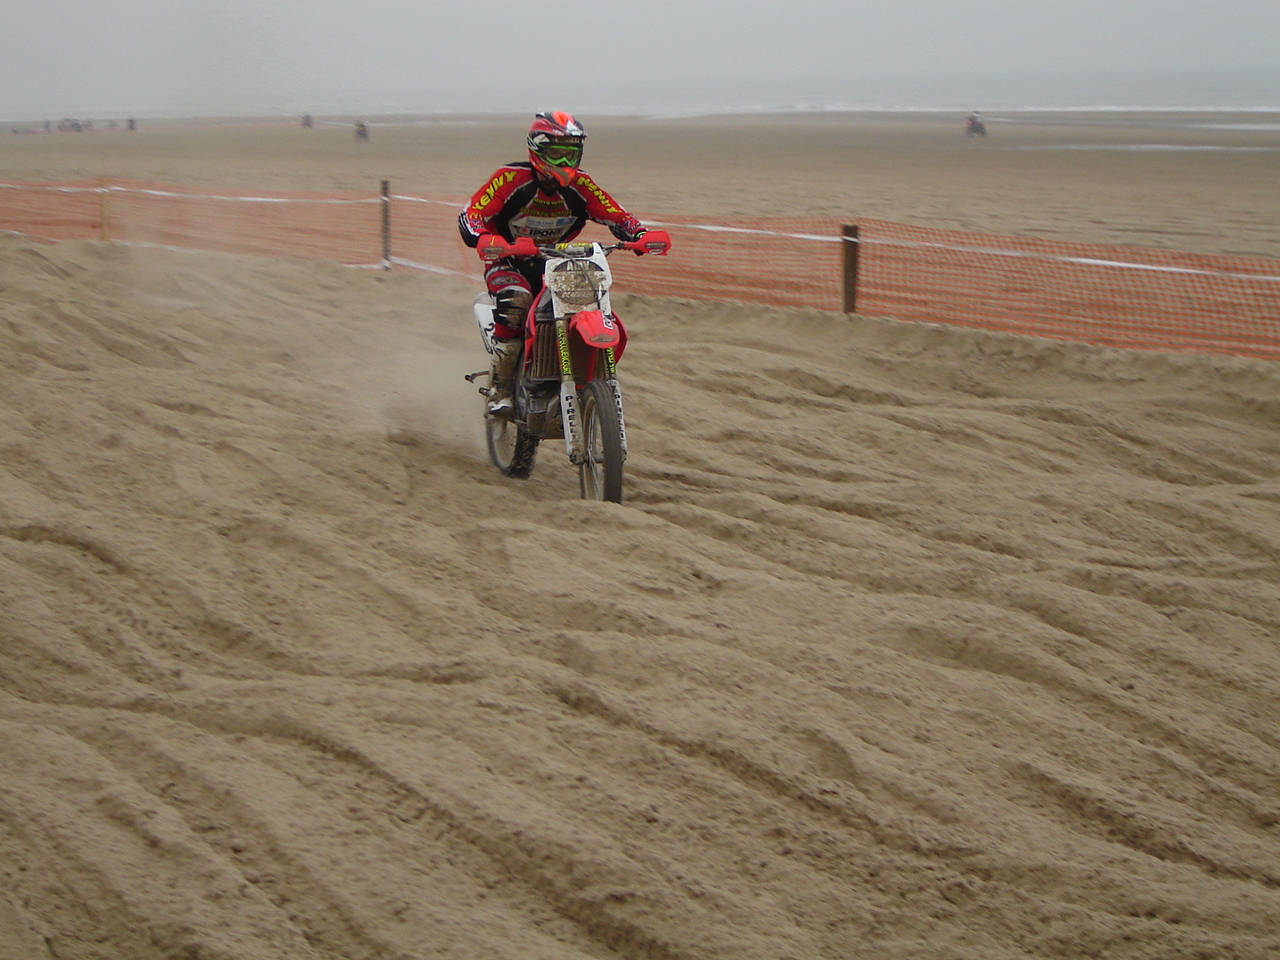 Enduropale in Le Touquet (northern France)